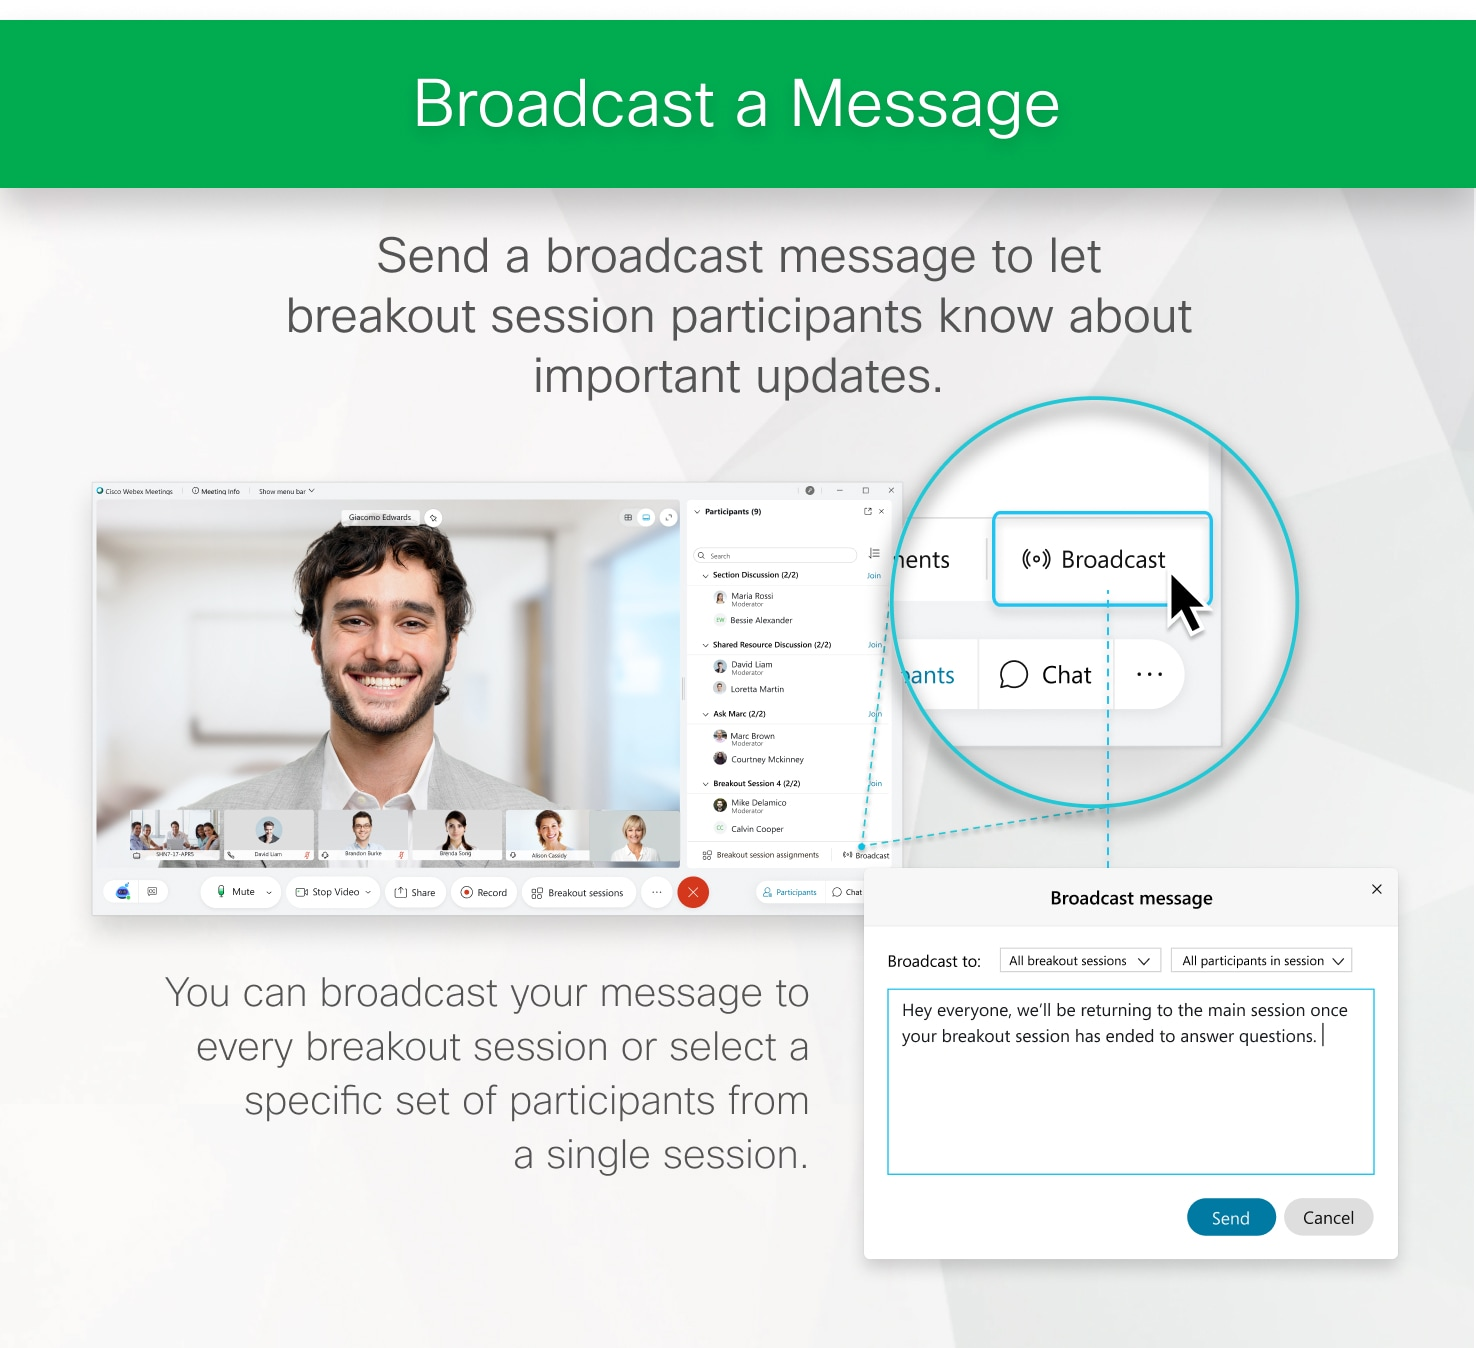 Send a broadcast message to let breakout session participants know about important updates.